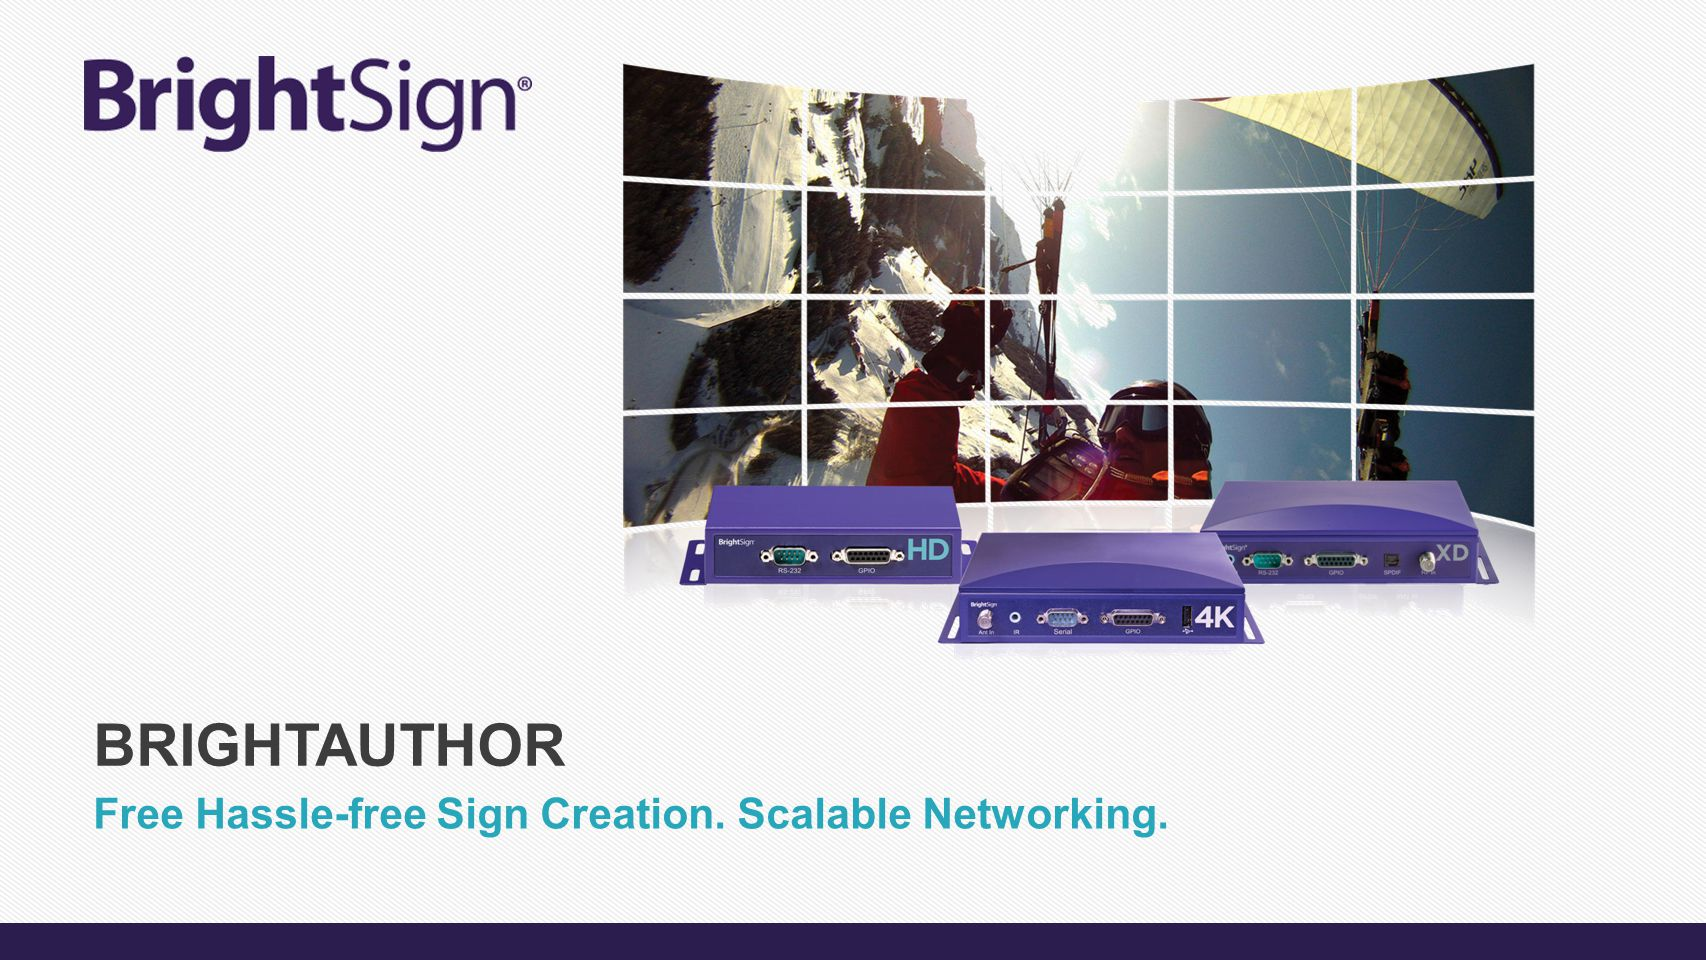 Free Hassle-free Sign Creation. Scalable Networking. BRIGHTAUTHOR